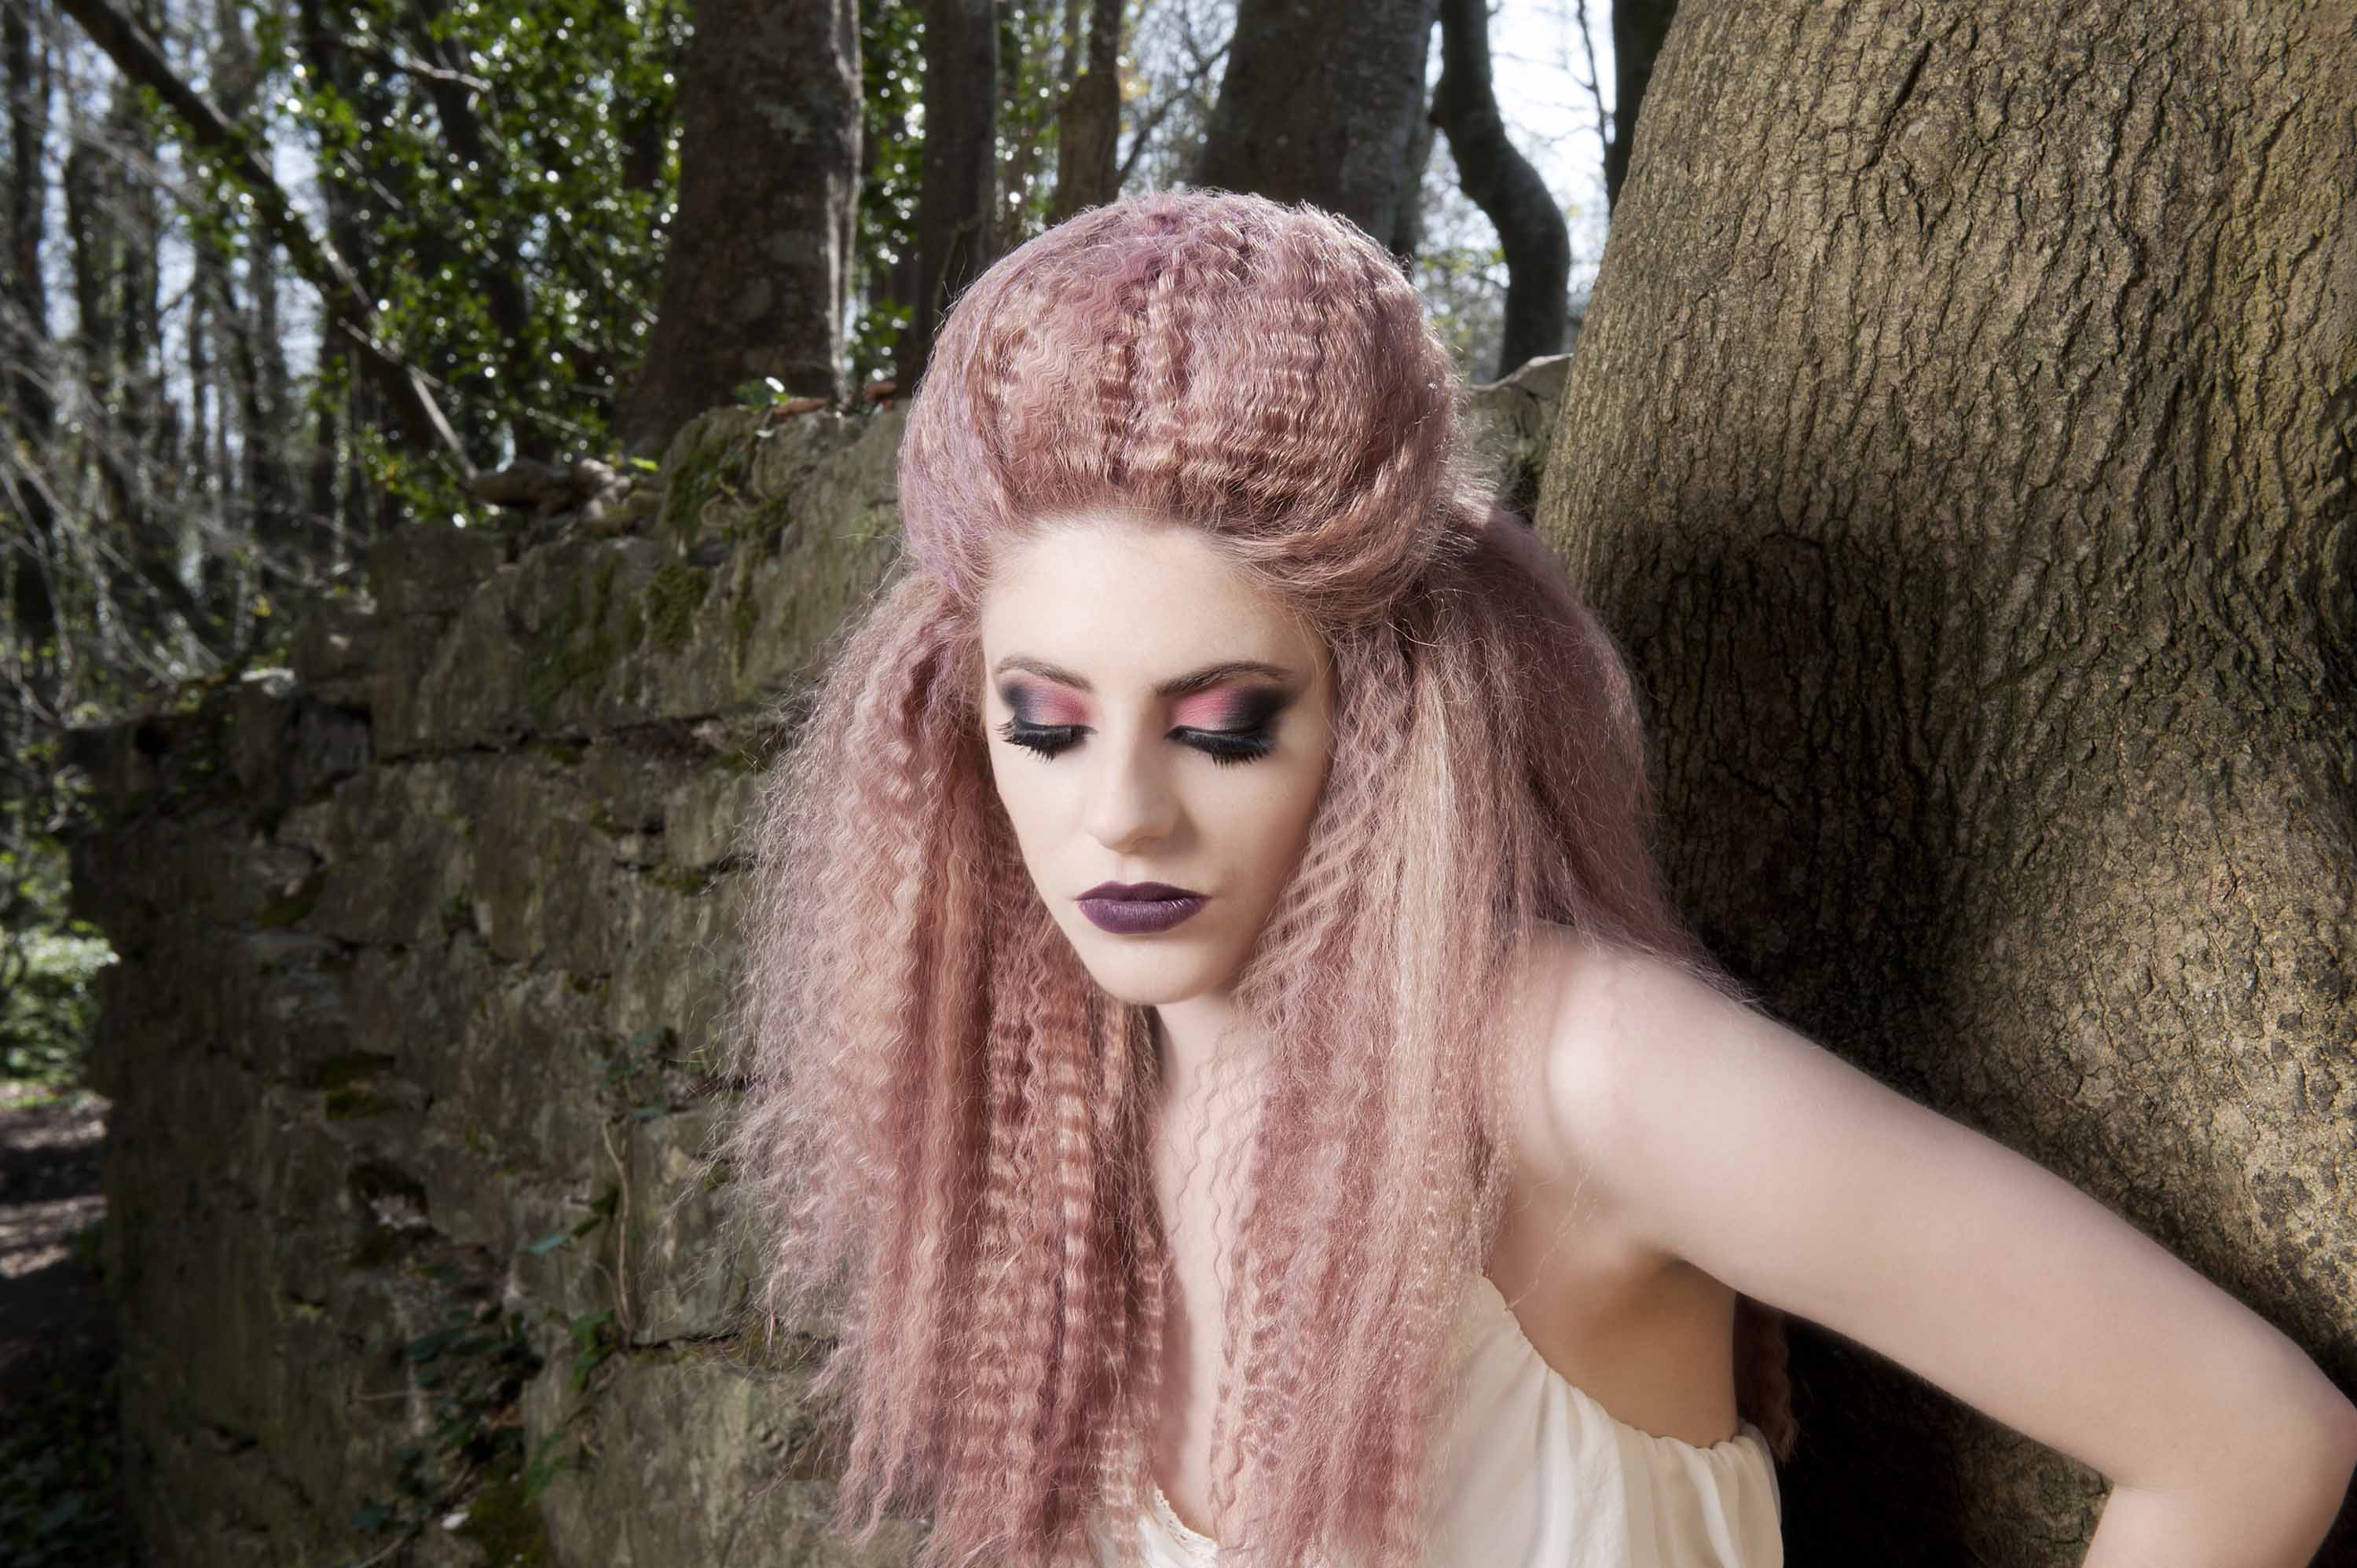 The Best Halloween Hair Styles Of 2016 7 Spooky Ideas To Try Now